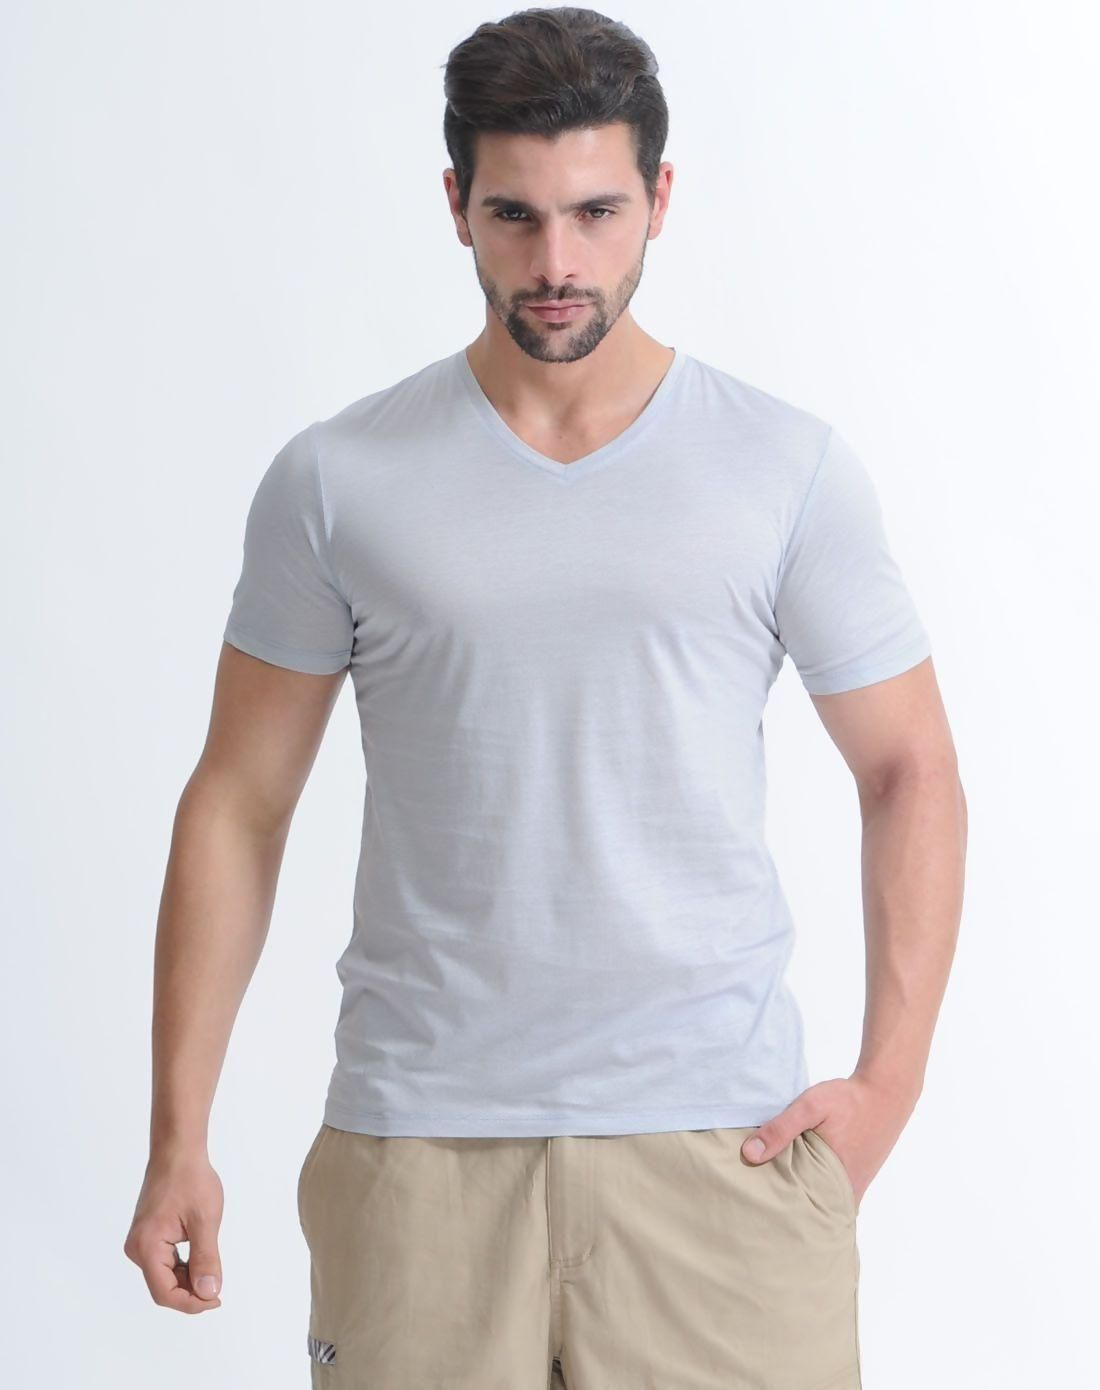 VIPme VIPSHOP Global  Guy Laroche Gray TShirt  AdoreWecom